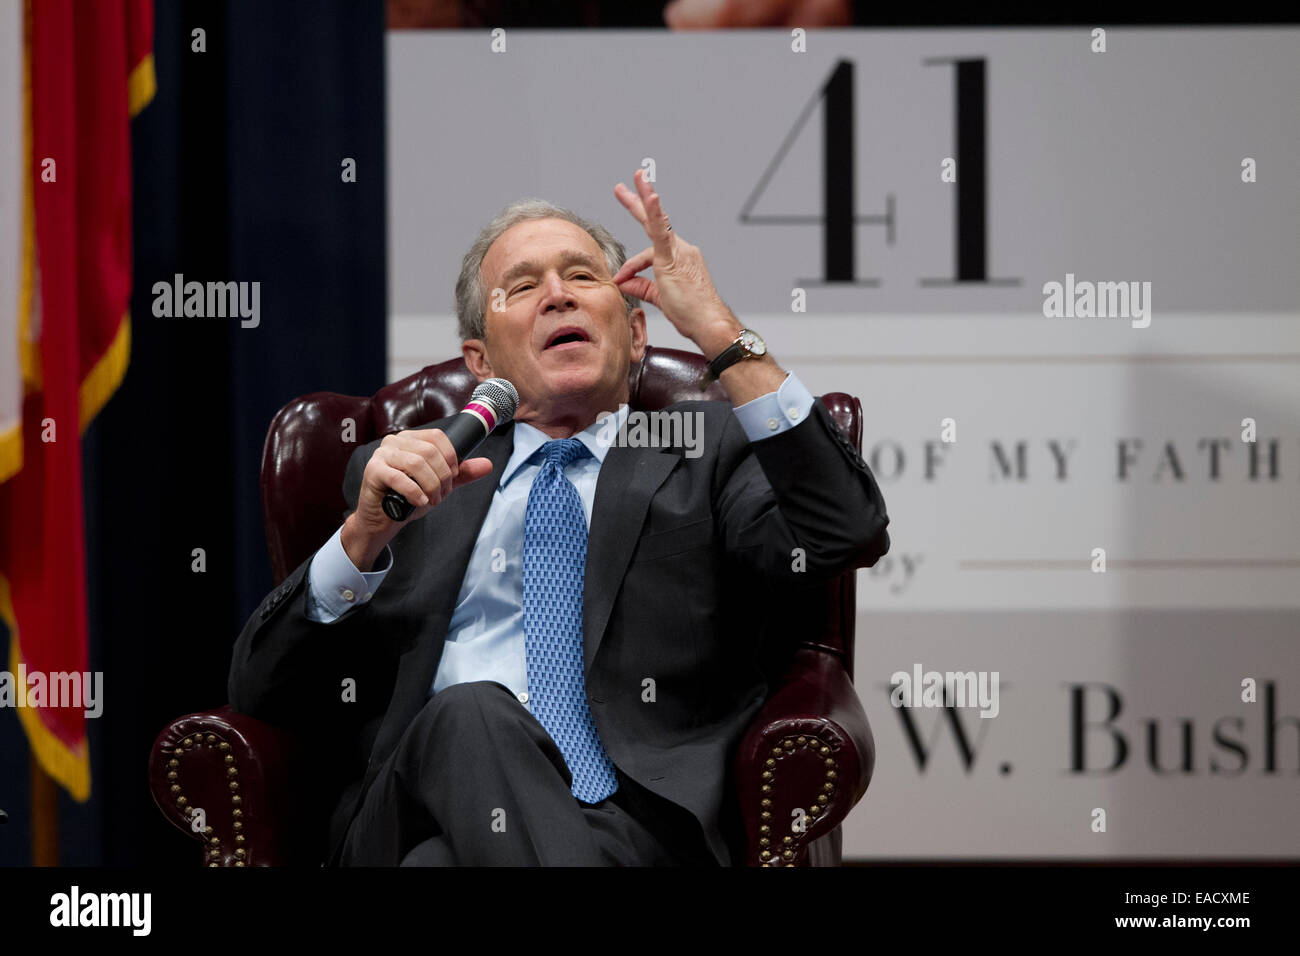 College Station, Texas, USA. 11th November, 2014. Former U.S. President George W. Bush talks about his new book, - Stock Image